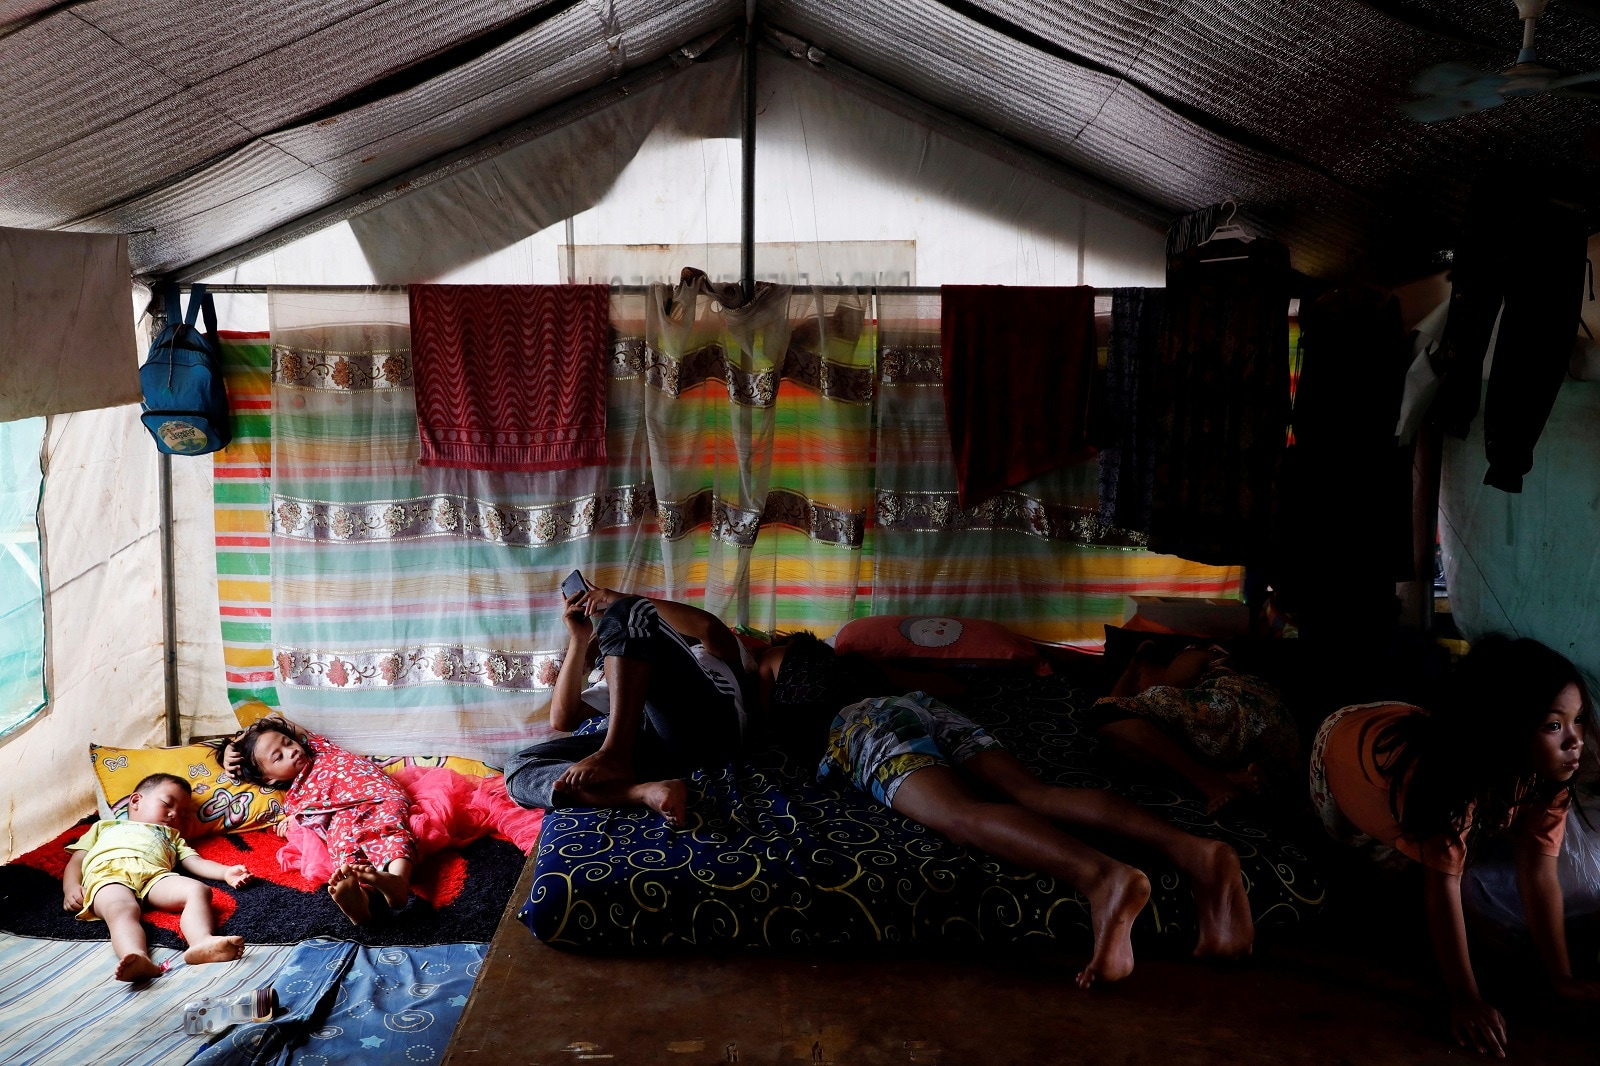 A family takes a nap in a tent at an evacuation camp for families displaced by the Marawi siege, in Marawi City, Lanao del Sur province, Philippines, May 12, 2019. REUTERS/Eloisa Lopez